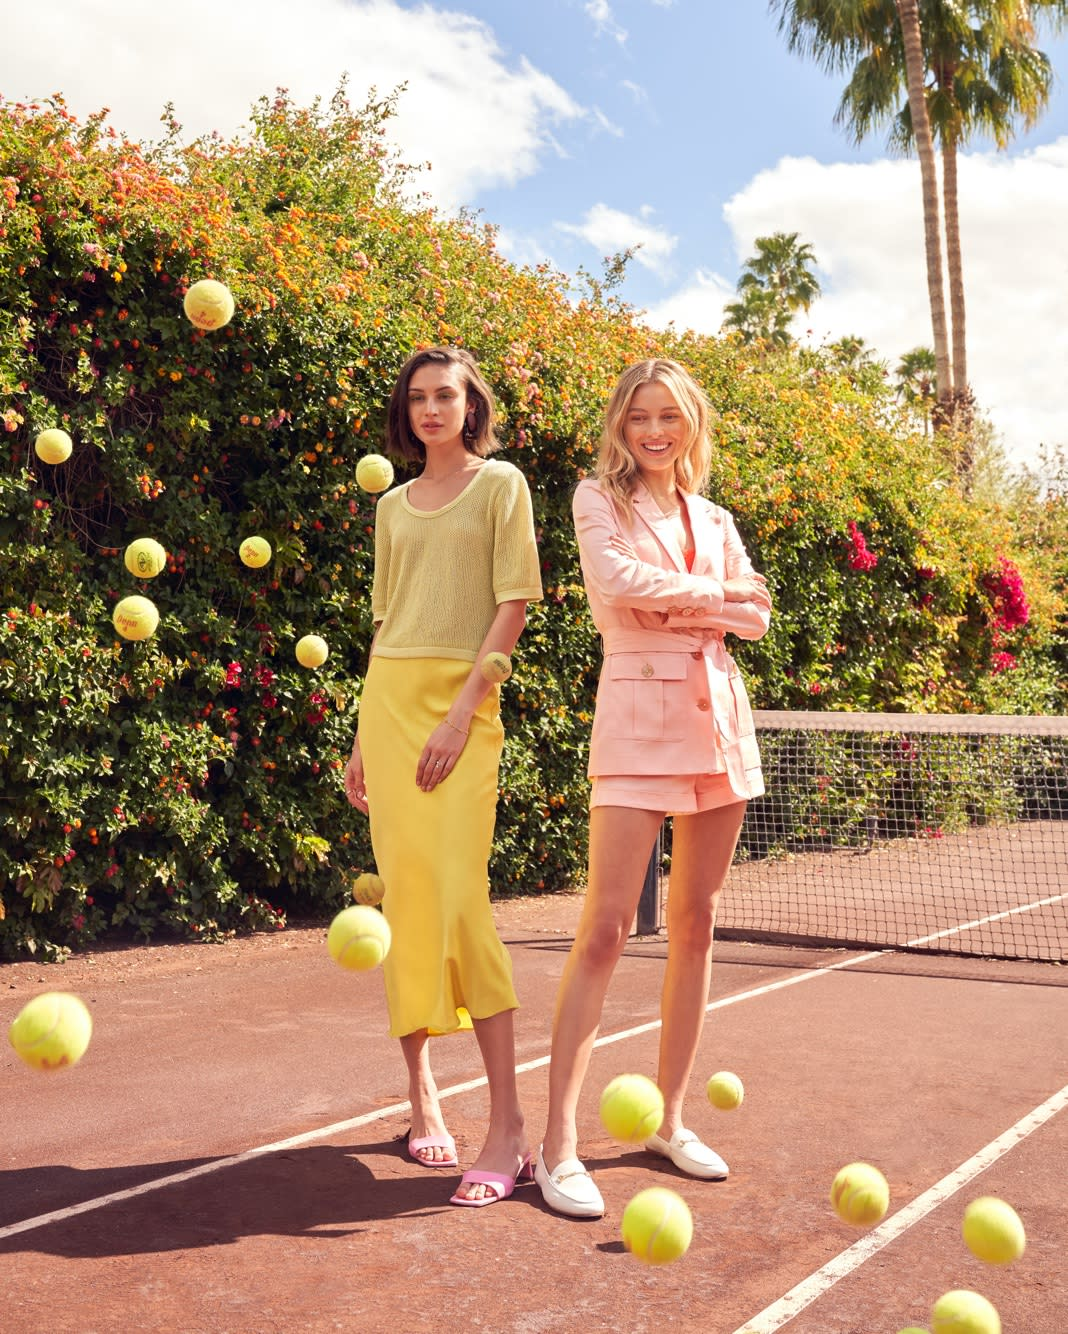 tennis in pastels